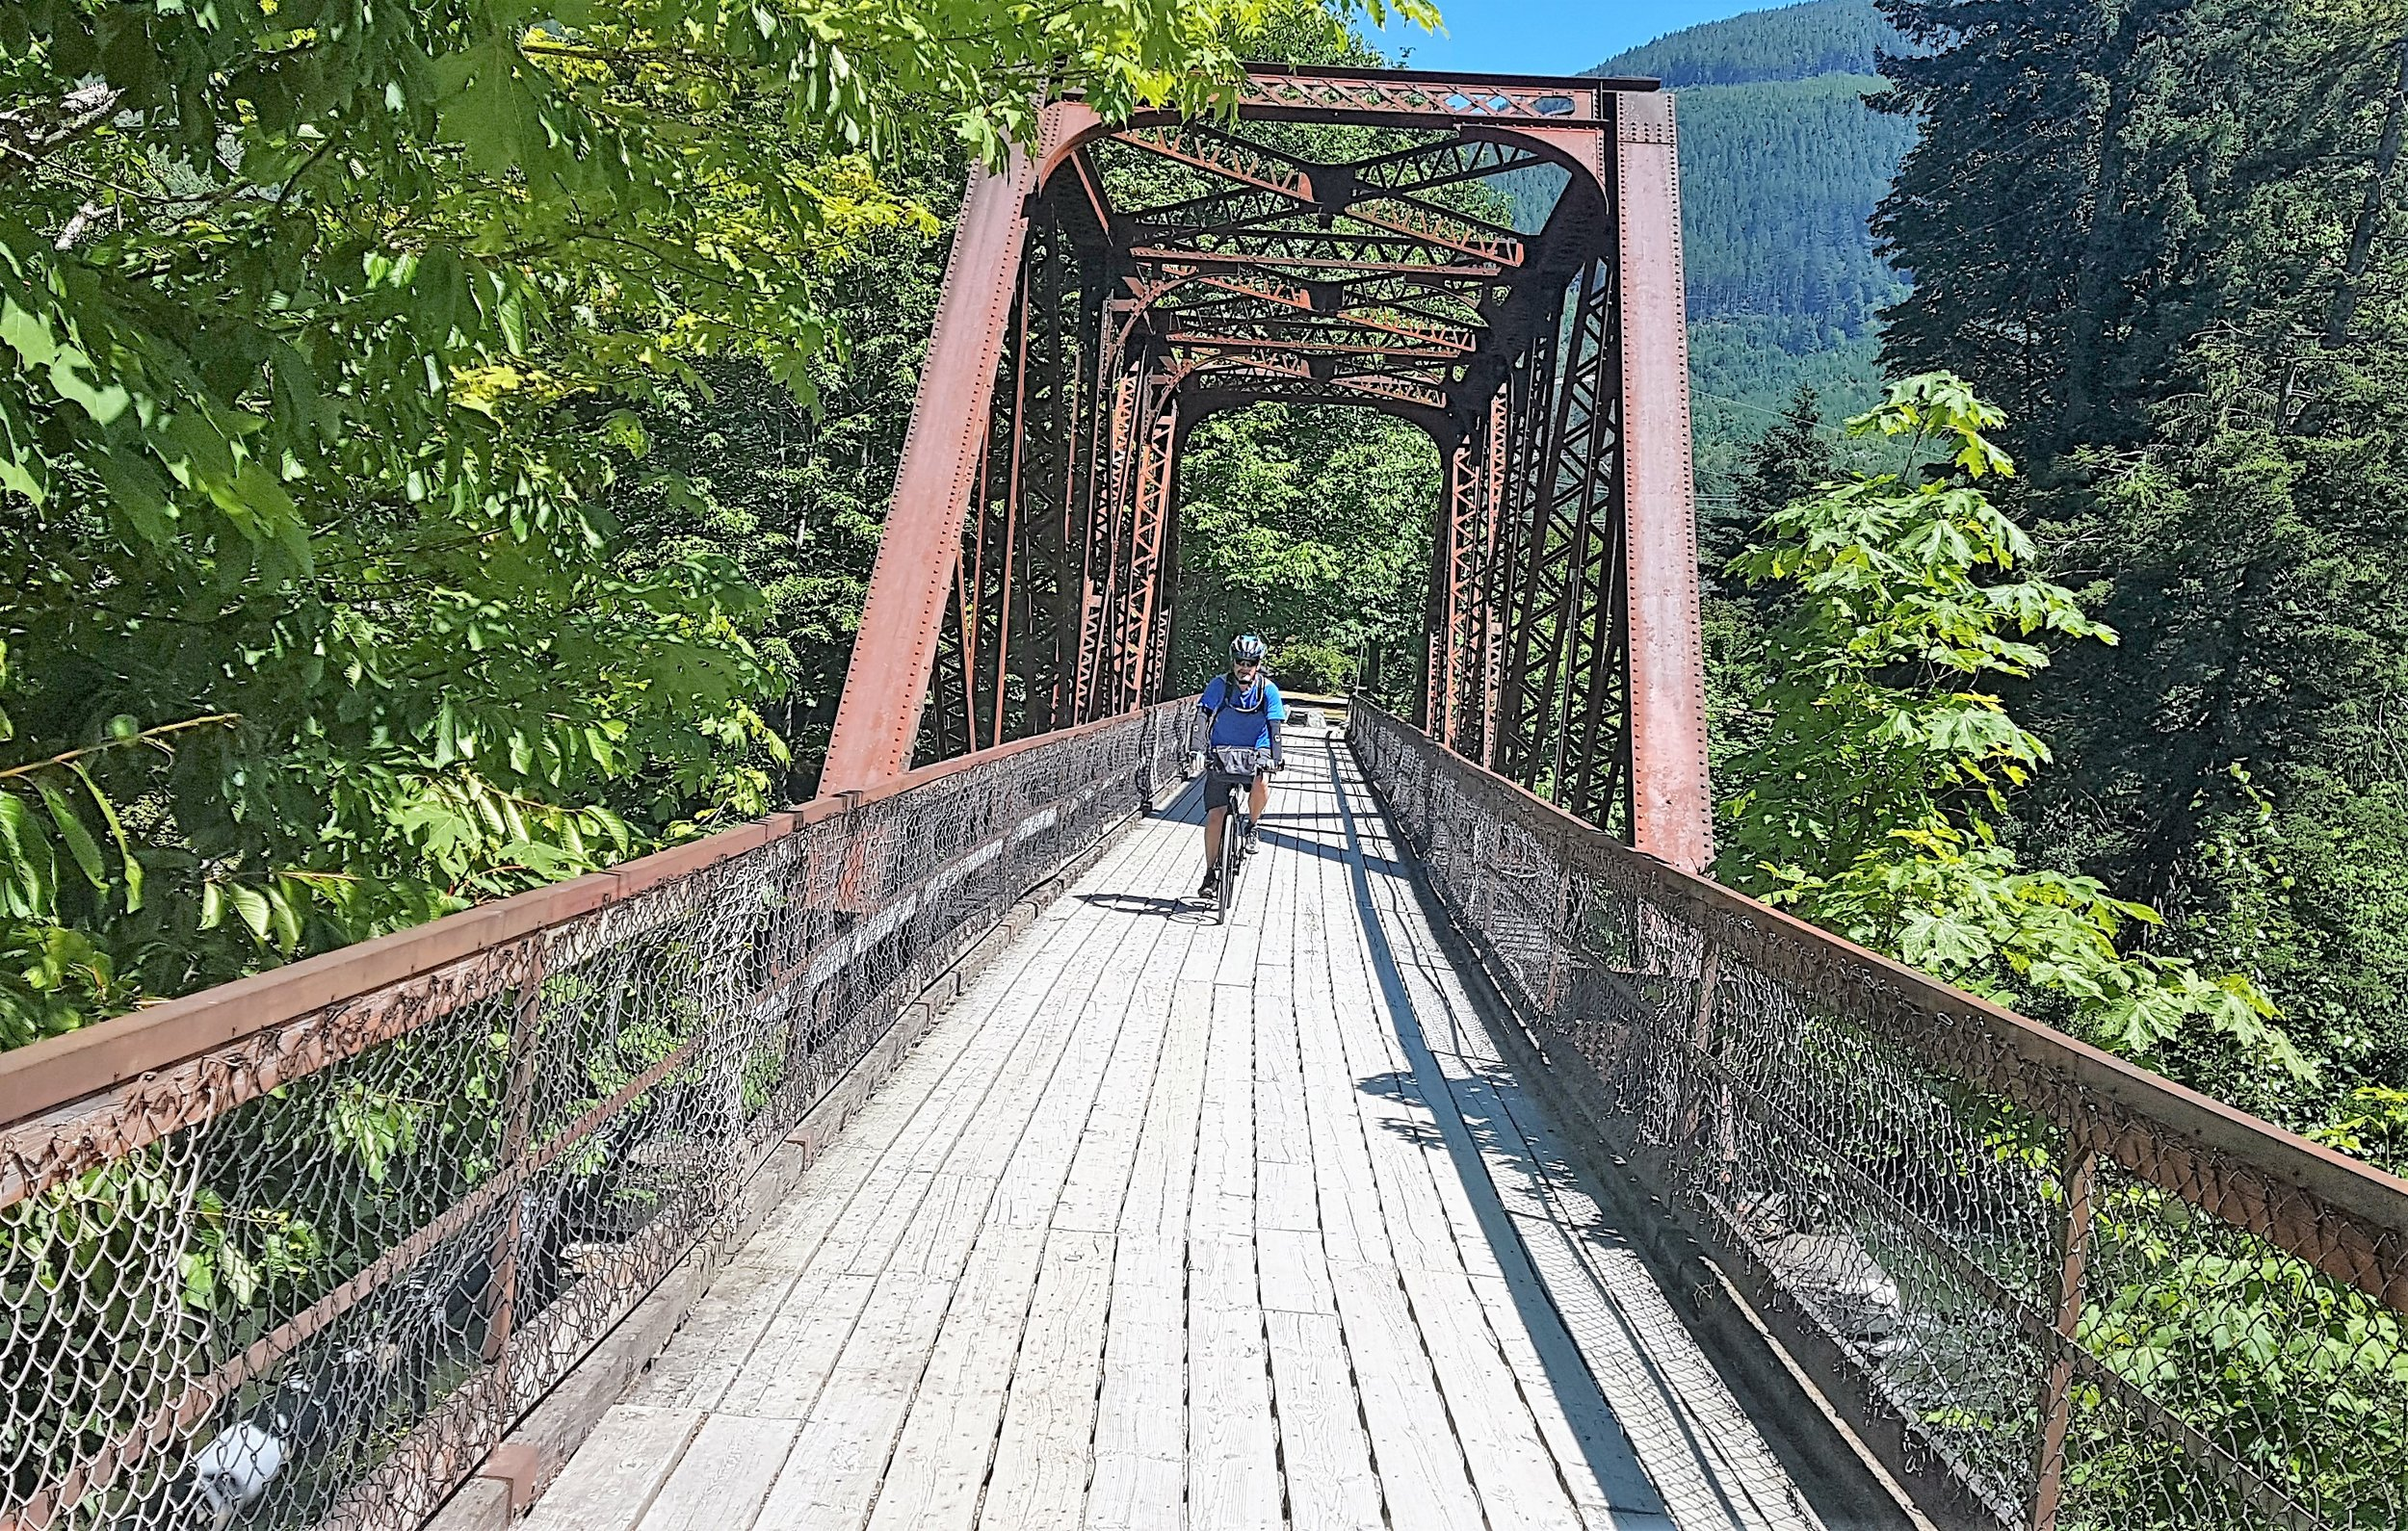 Pedalling along the Cowichan Valley Trail, a segment of the Trans Canada Trail on Vancouver Island